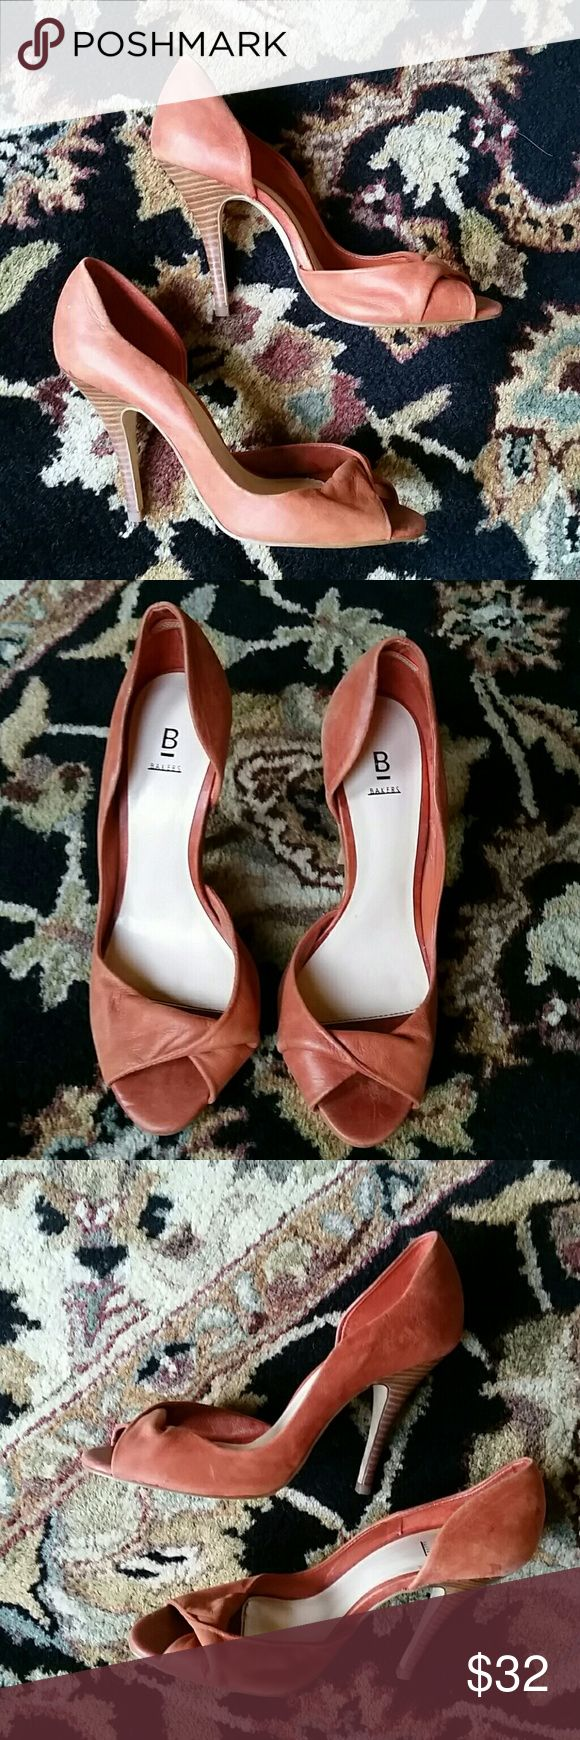 Distressed Soft Leather Burnt Orange High Heels Distressed, Soft Leather, Burnt Orange, Baker's High Heels Bakers Shoes Heels